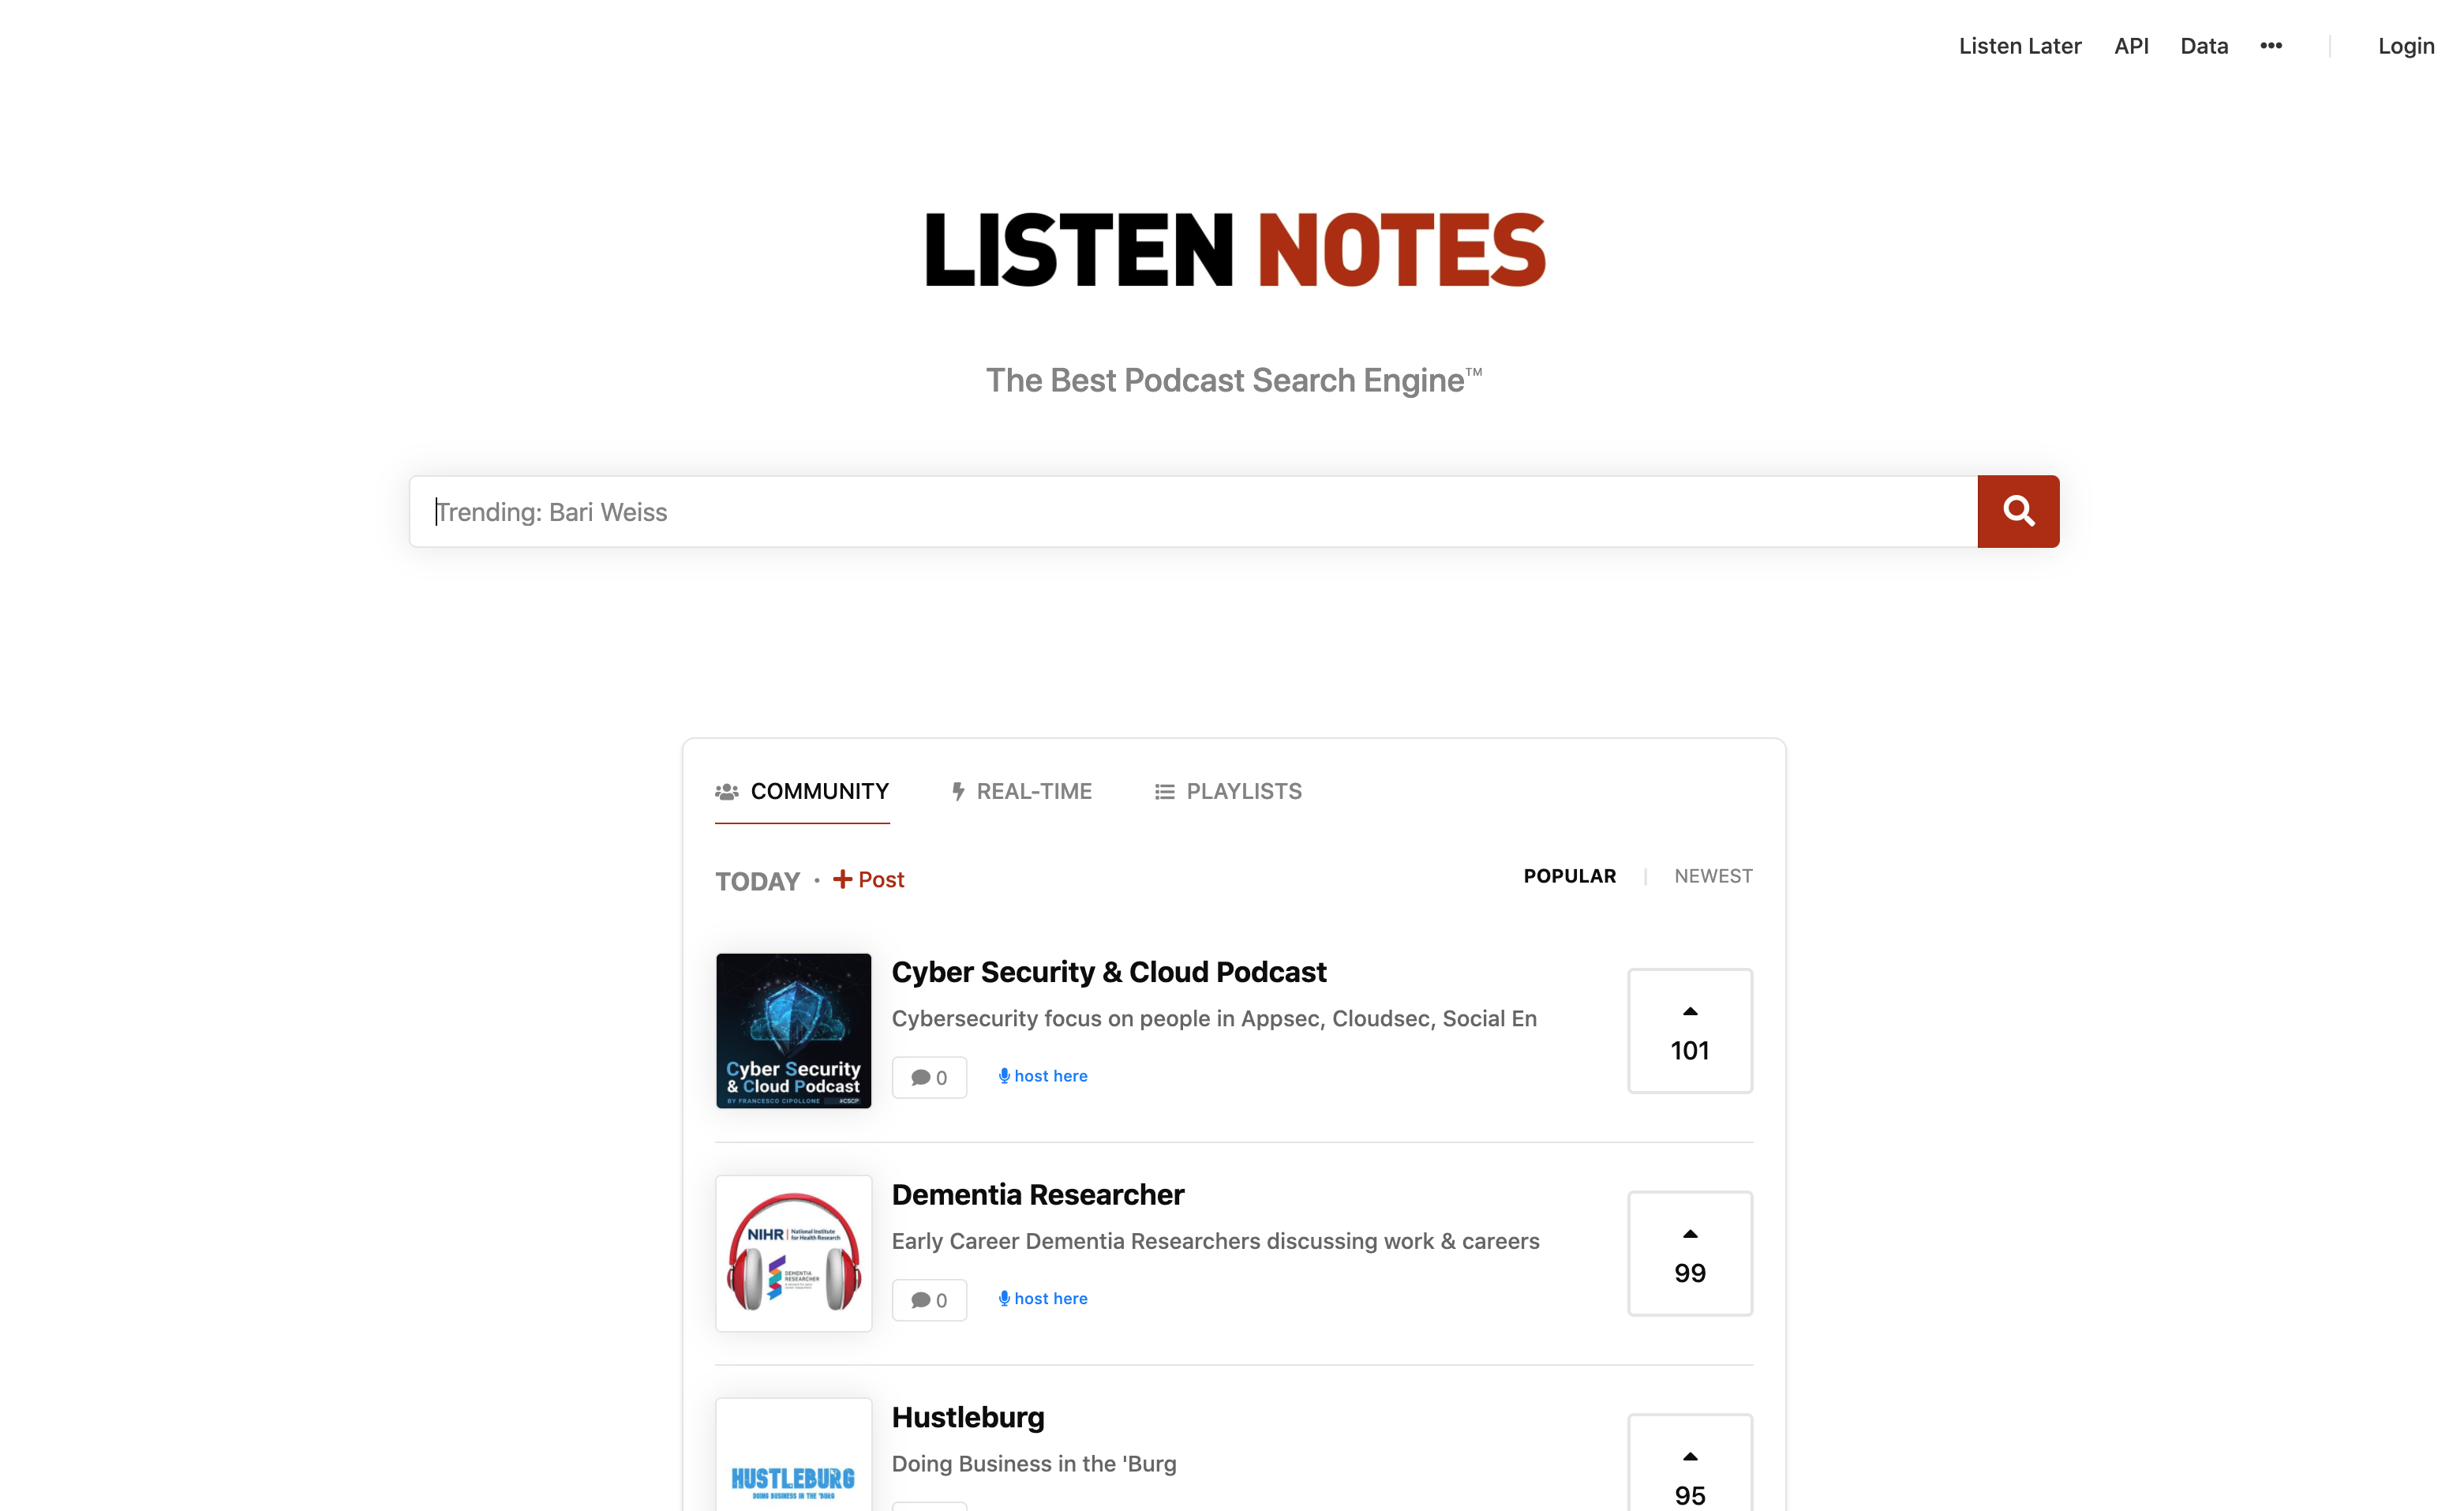 Listen Notes Podcast Search Engine Screenshot